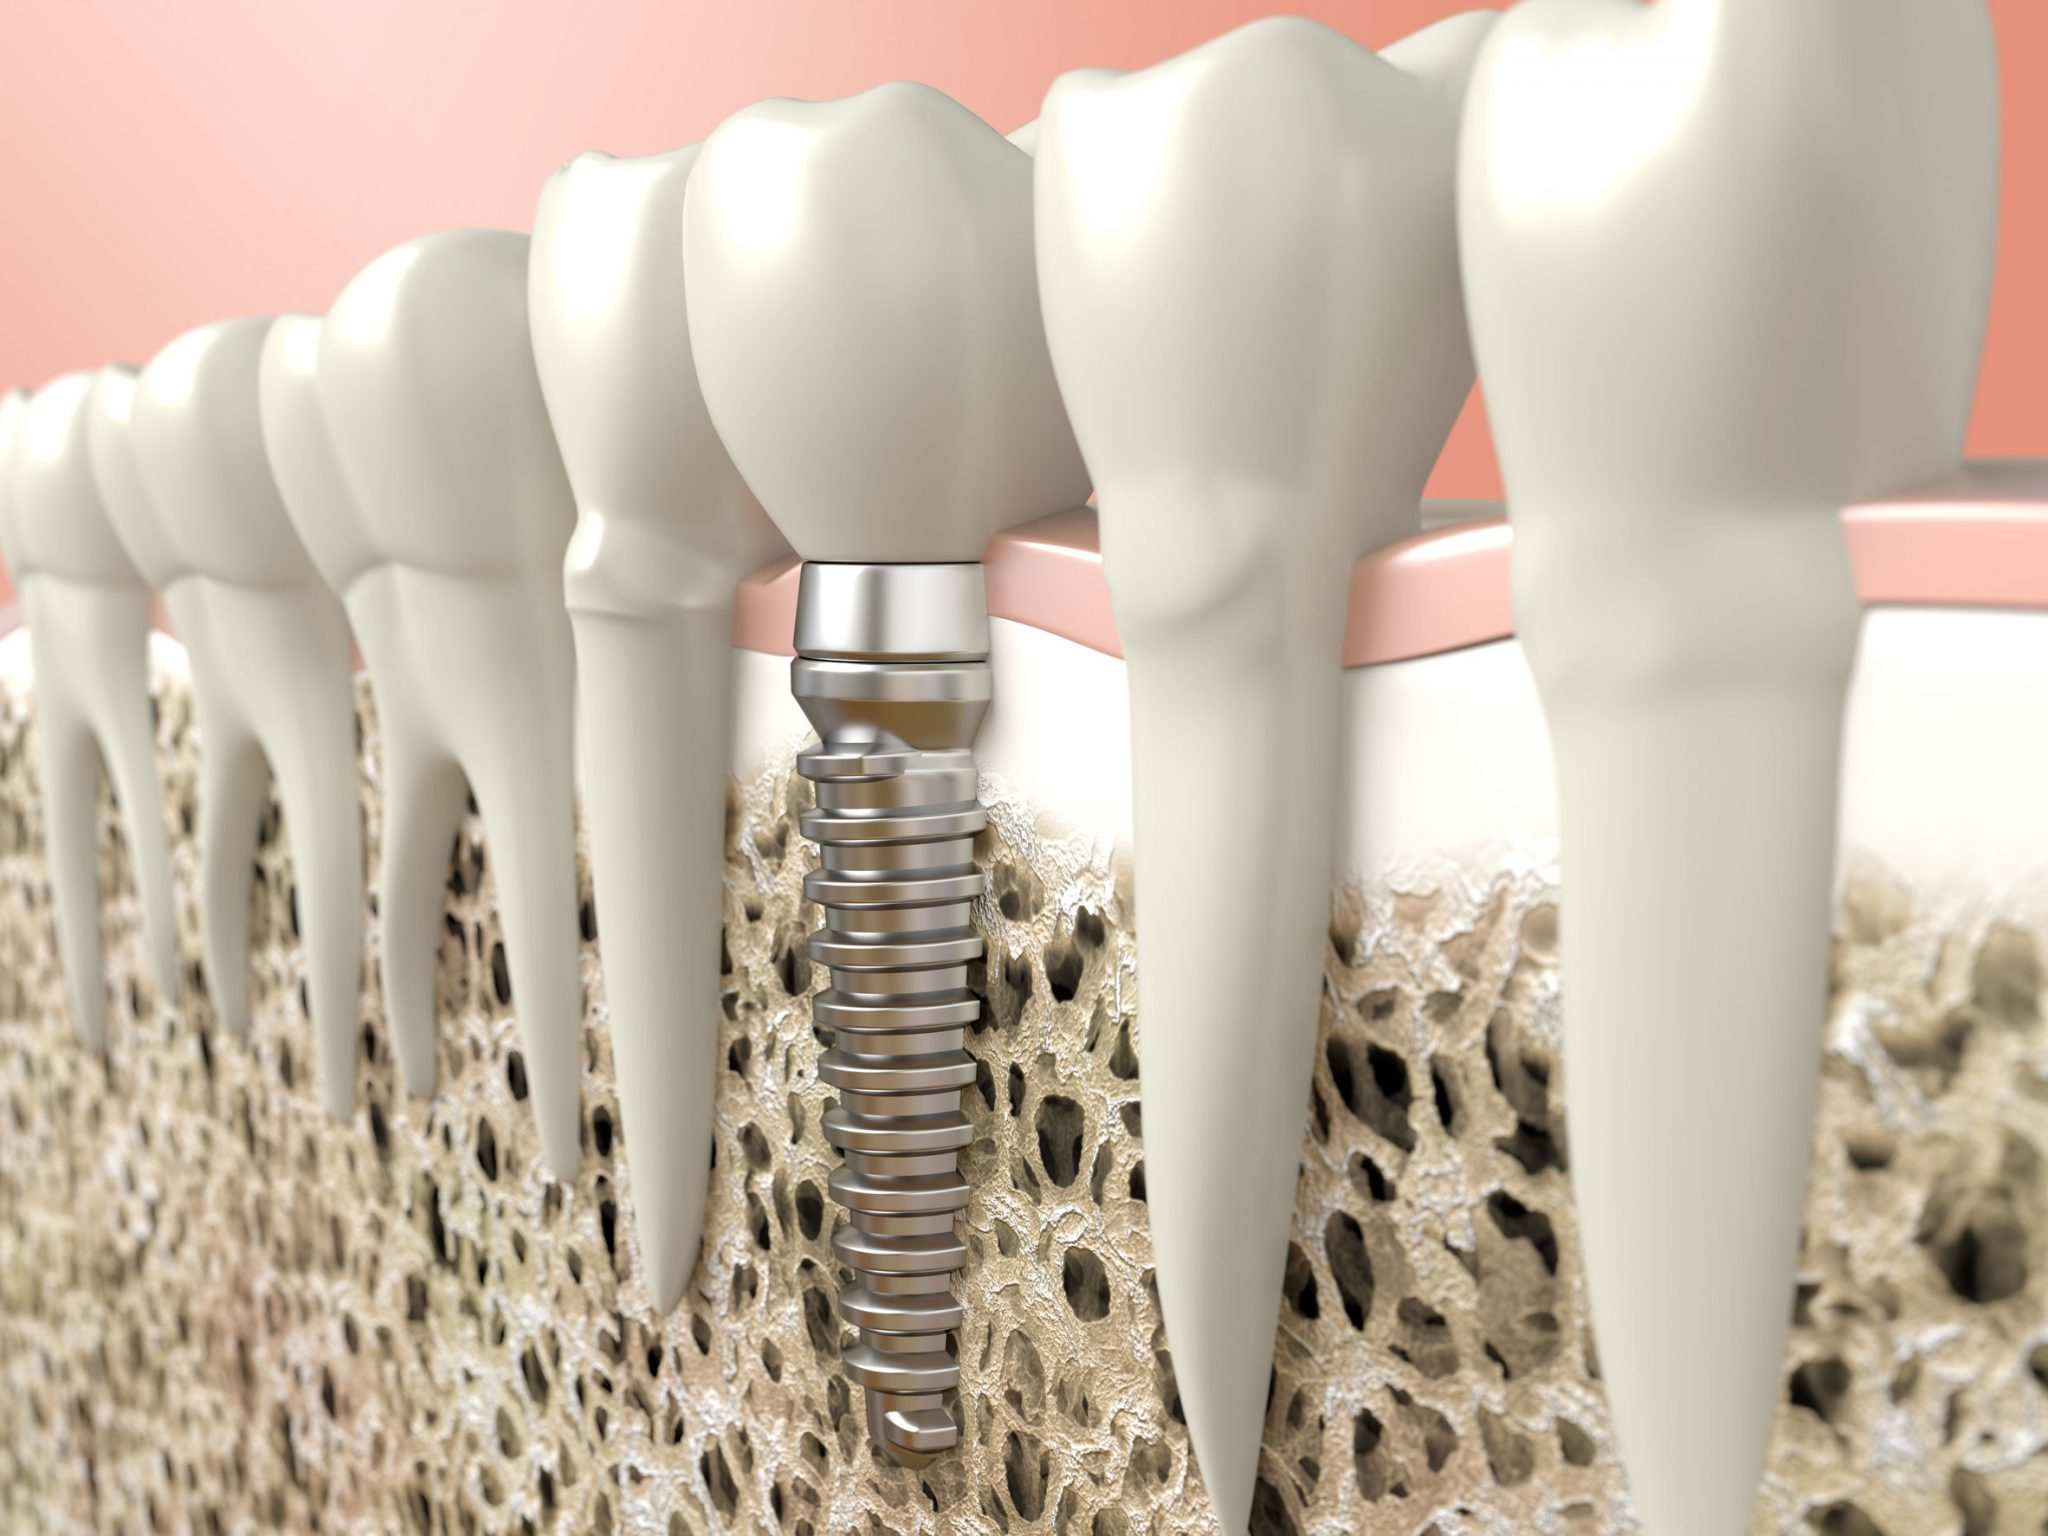 https://dentalopolis.com/wp-content/uploads/2017/05/dental-implant-rendering.jpg